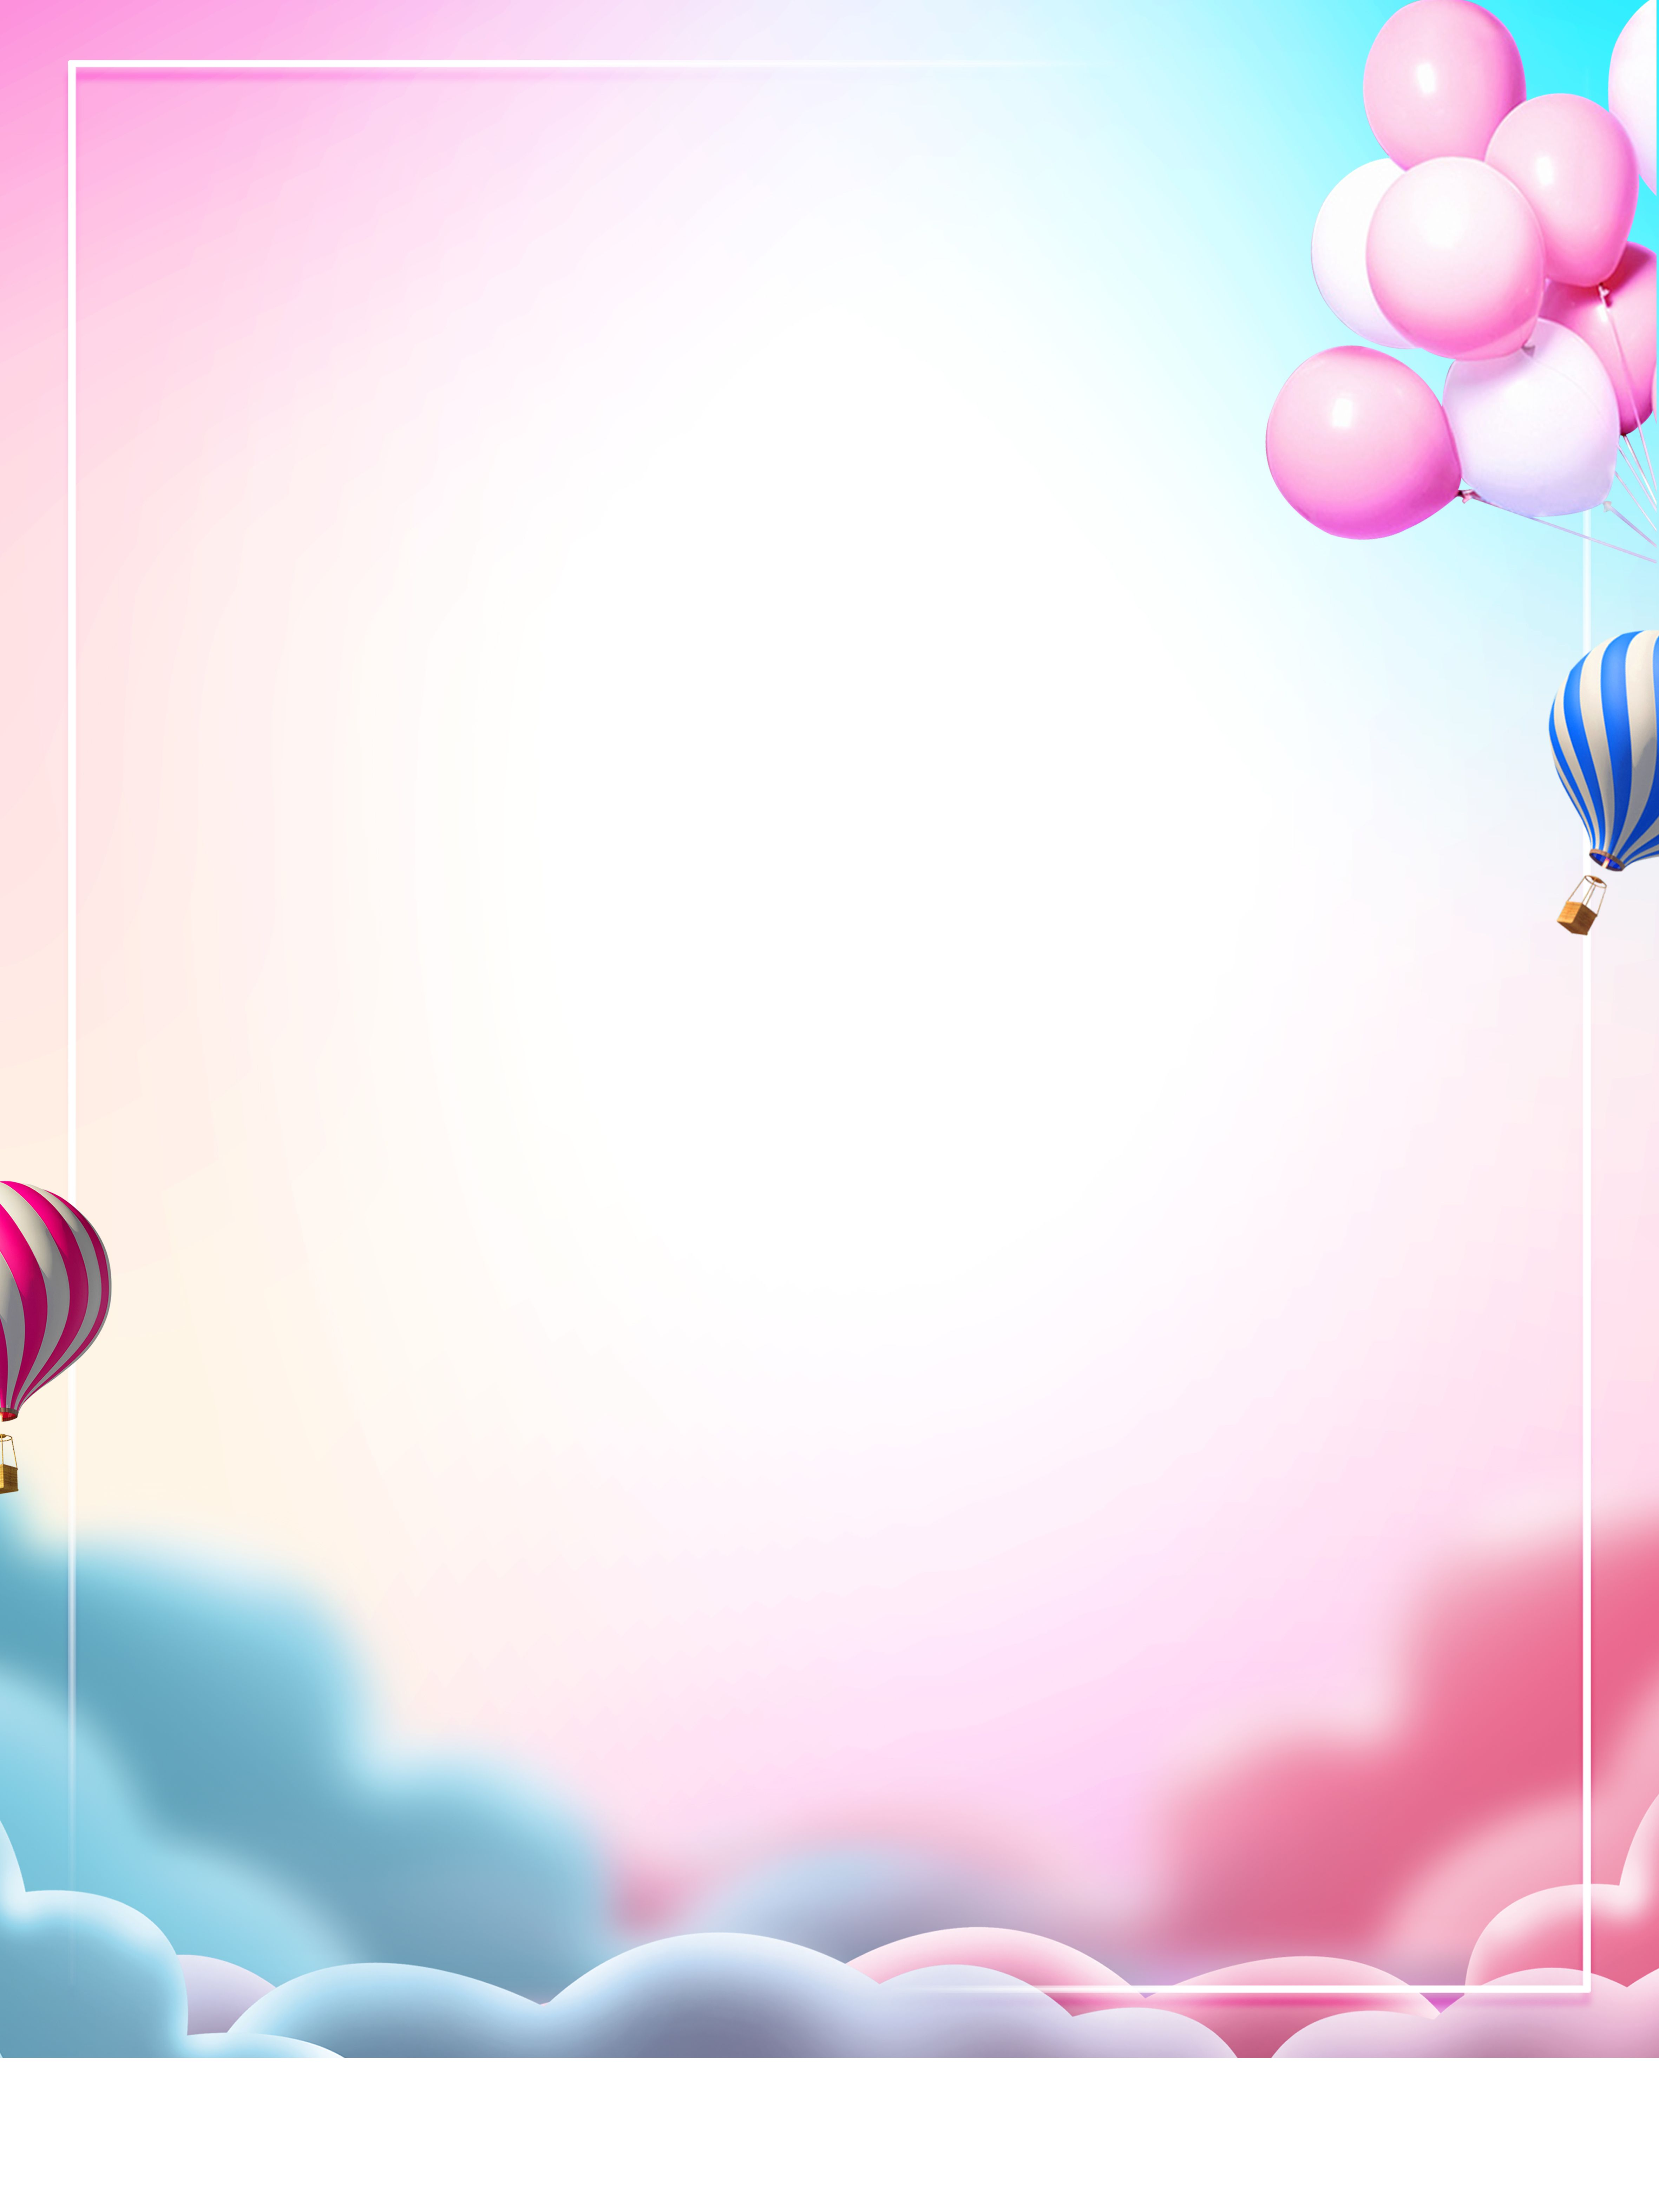 Simple Fresh Balloon Advertising Background Floral Wallpaper Phone Balloons Balloon Background